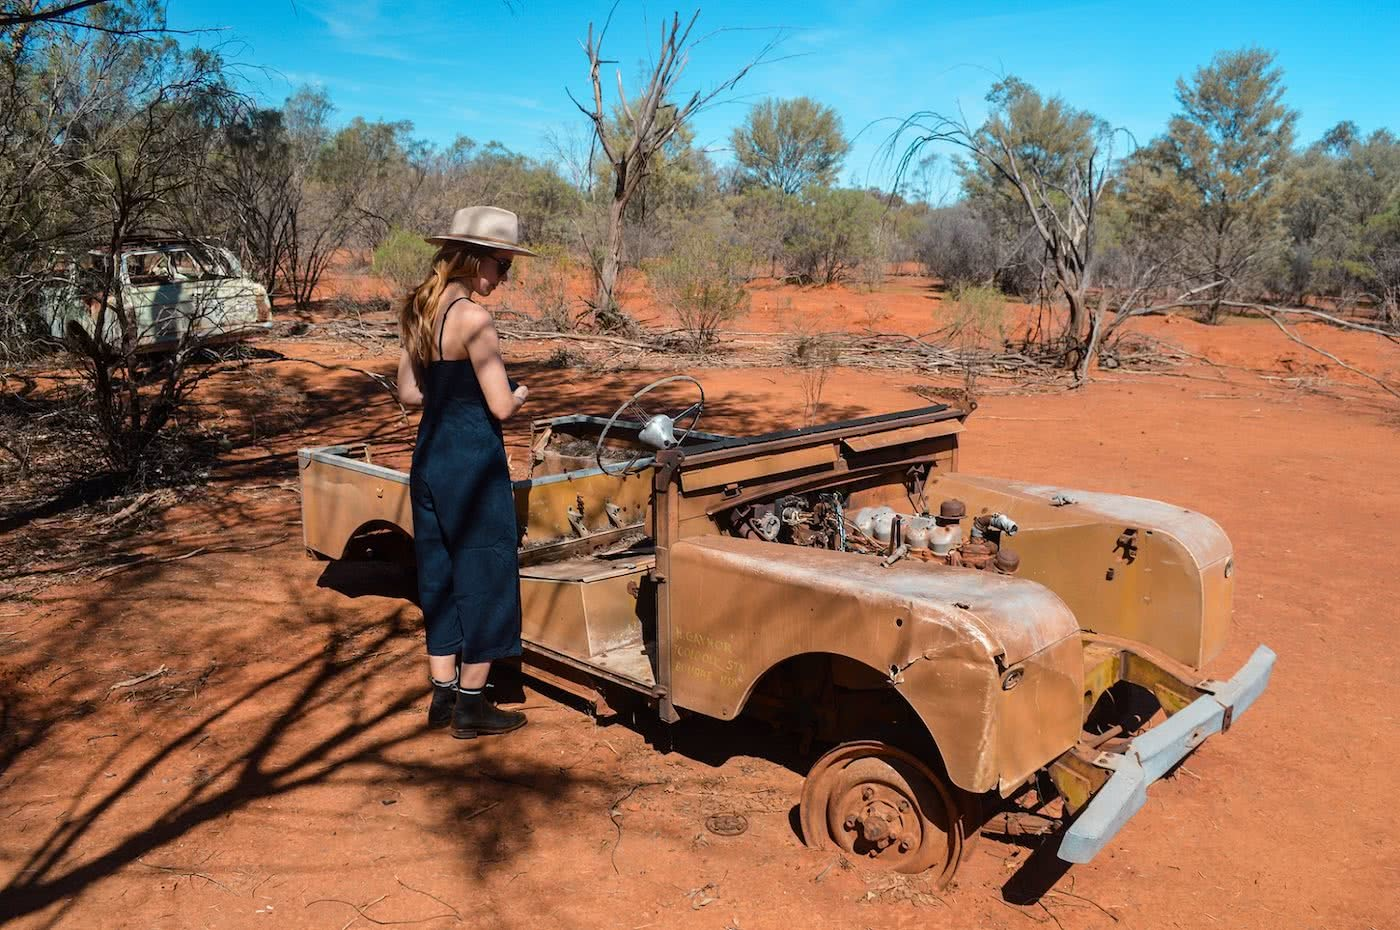 Taking Tiguan to the Outback // Gundabooka & Mutawintji National Parks (NSW) by Natalie Hardbattle, Not Tiguan, rusty car, land rover defender